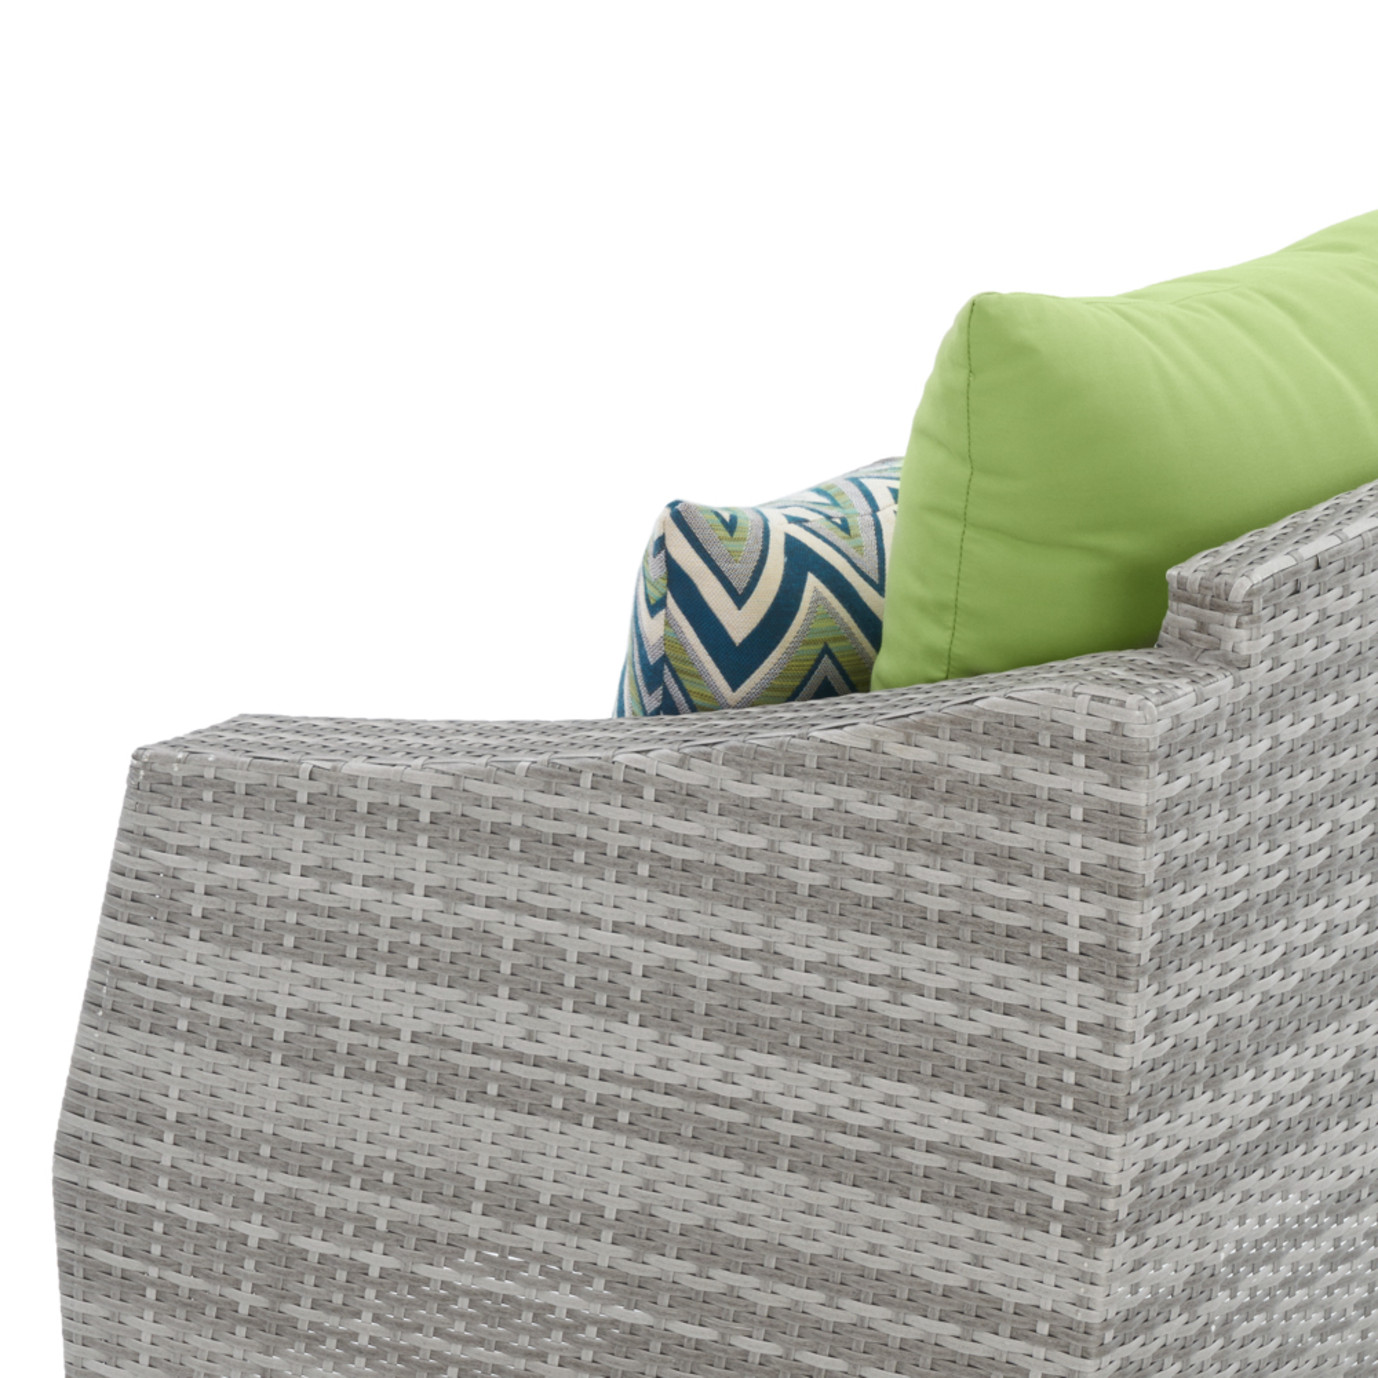 Cannes™ 8pc Sofa Set with Furniture Covers - Ginkgo Green